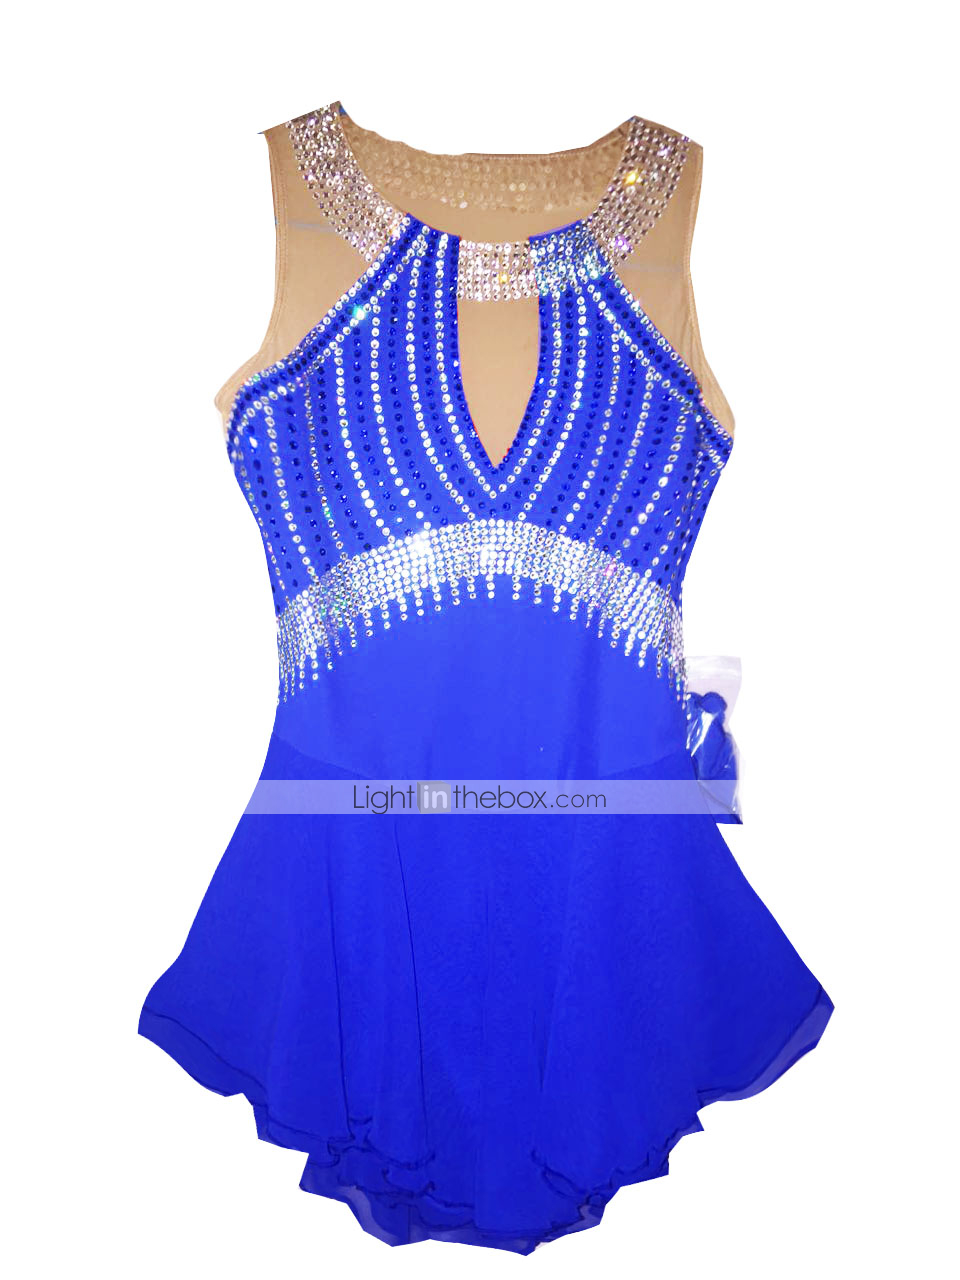 Ice Skating Dress Women's Sleeveless Skating Dresses ...